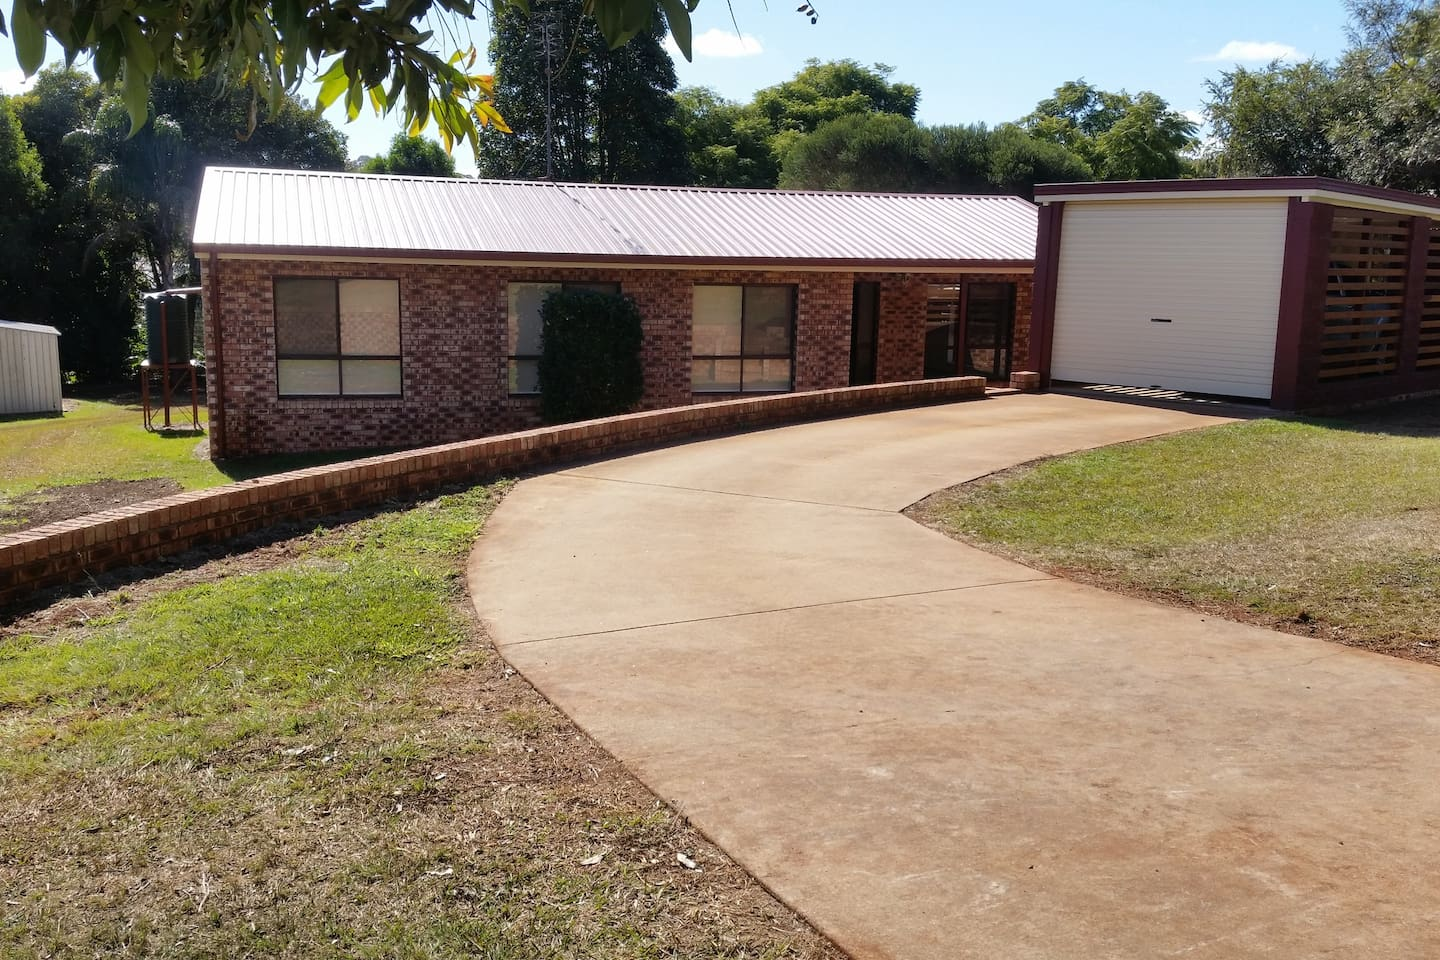 Welcome to 18 Murray Parade!  Quaint 3 bedroom 1 bathroom house in a prime, quiet area of Kingaroy.  Well appointed and fully furnished, clean, fresh, and tidy.  Just waiting for someone needing short term accommodation to enjoy the location and comfort of Kingaroy's hidden treasure.